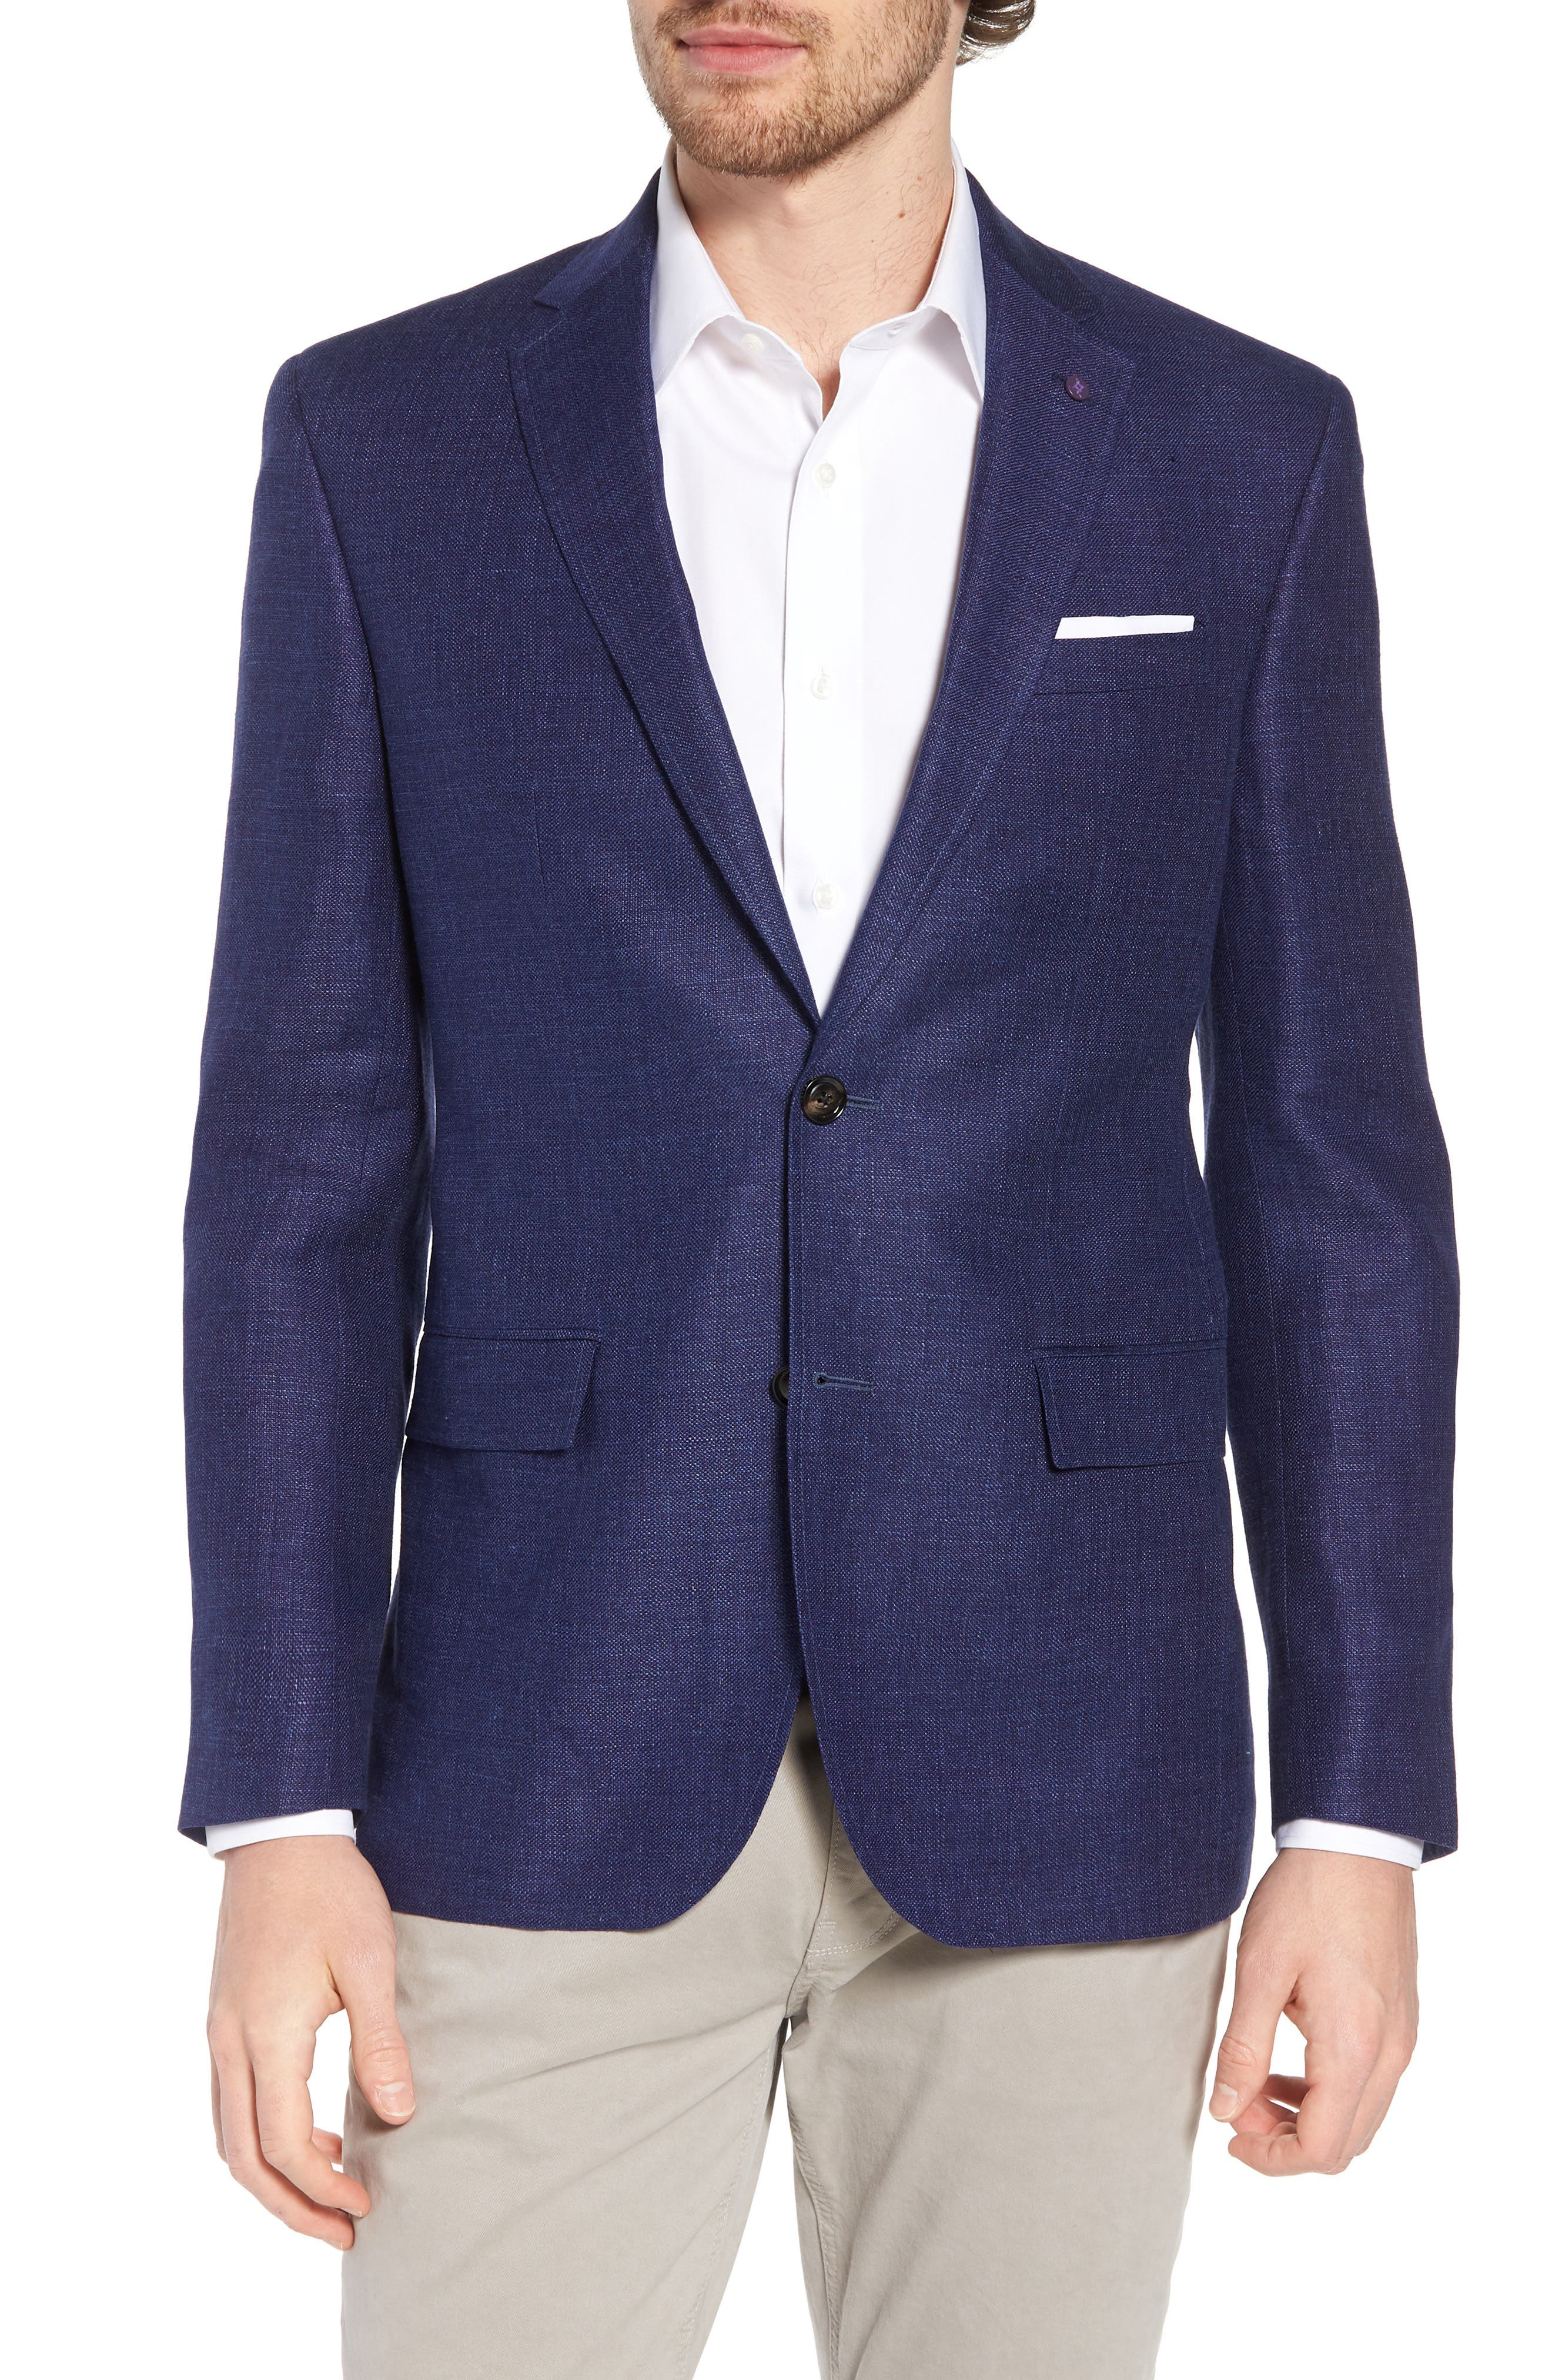 Jay Trim Fit Linen & Wool Blazer,                             Main thumbnail 1, color,